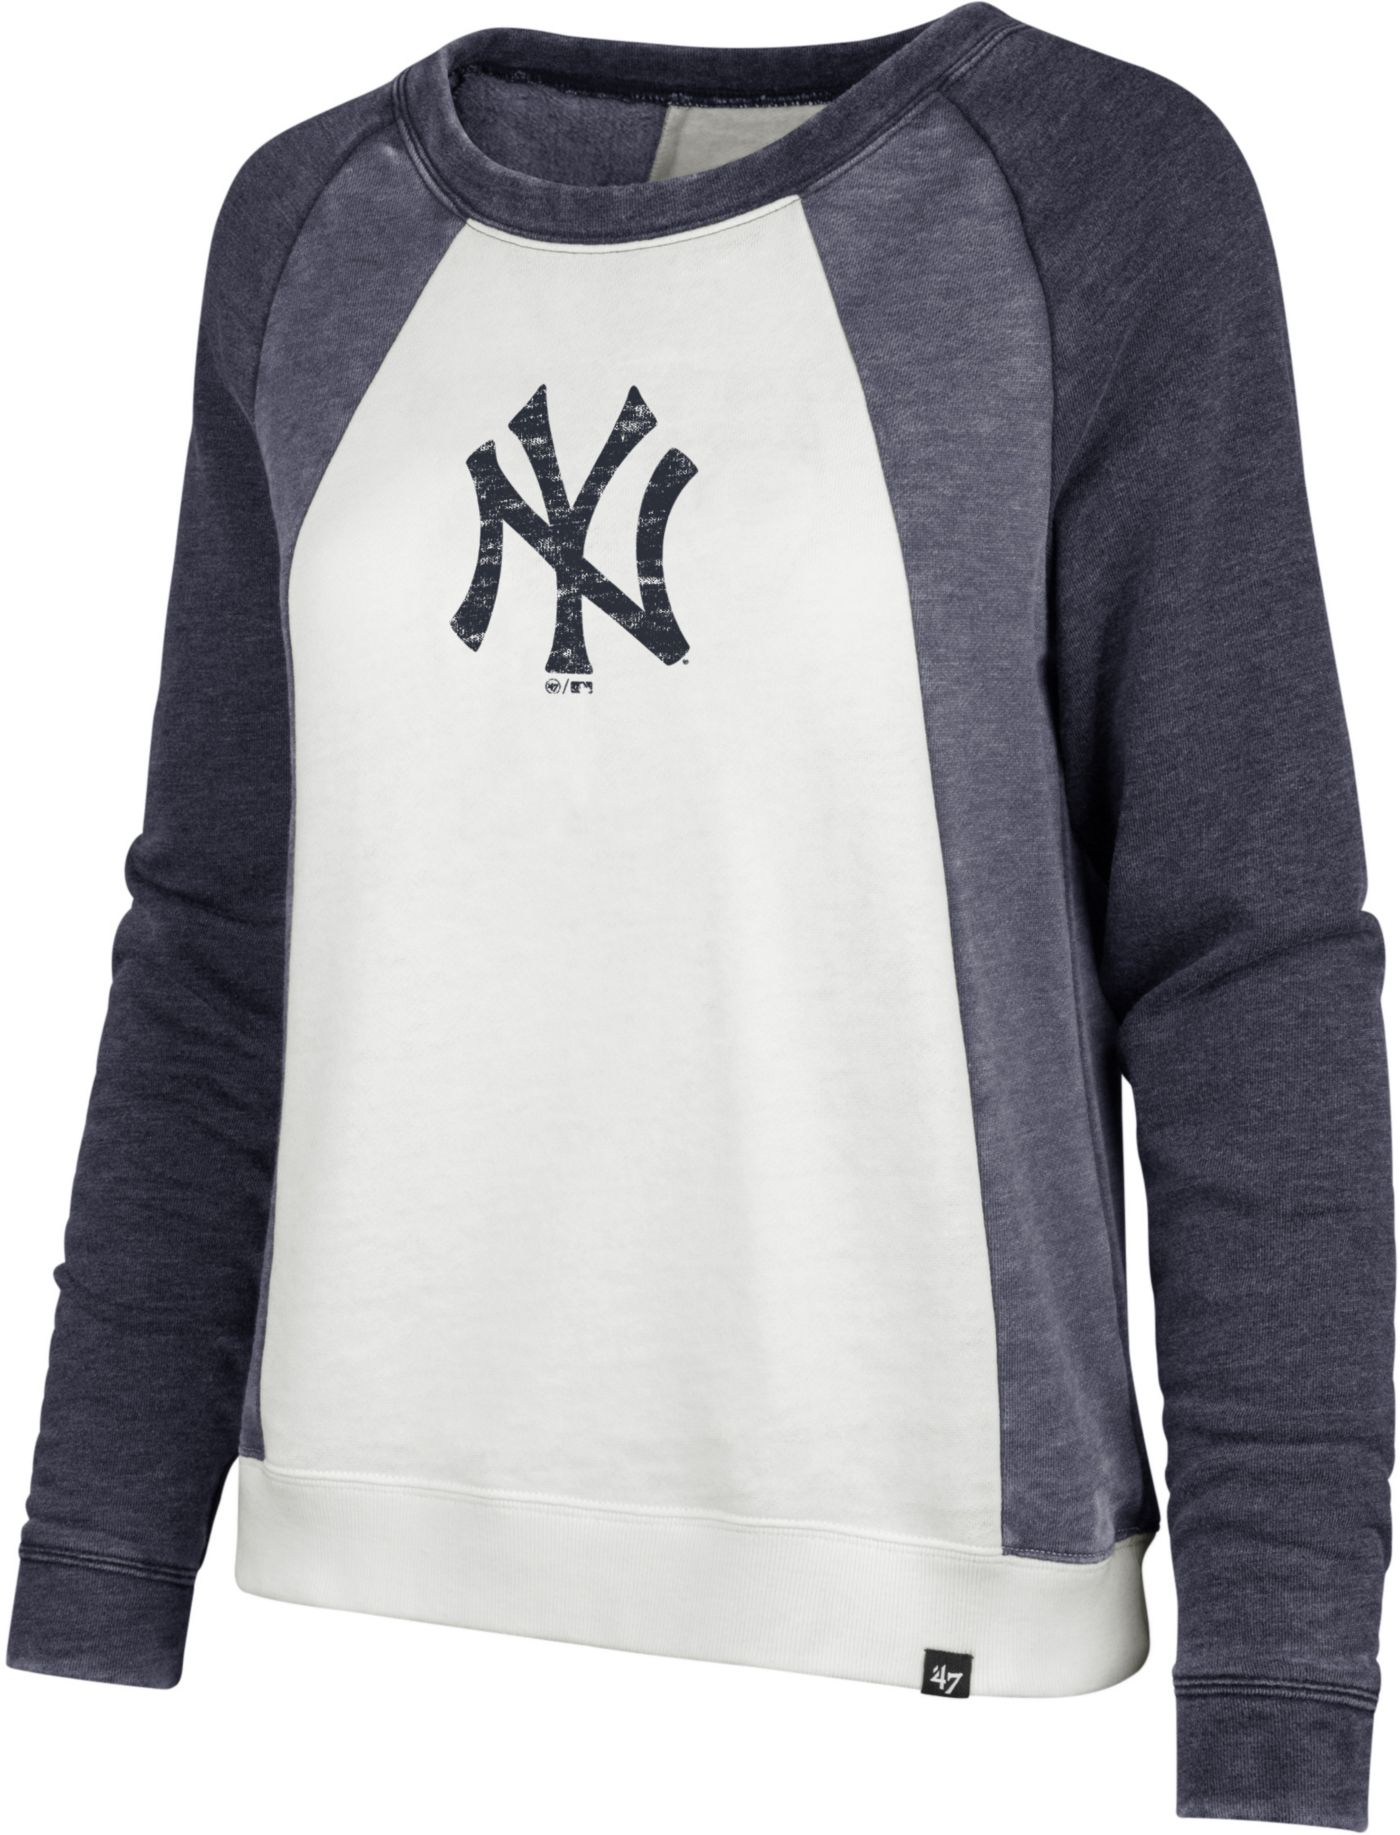 '47 Women's New York Yankees Long Sleeve Crew Shirt